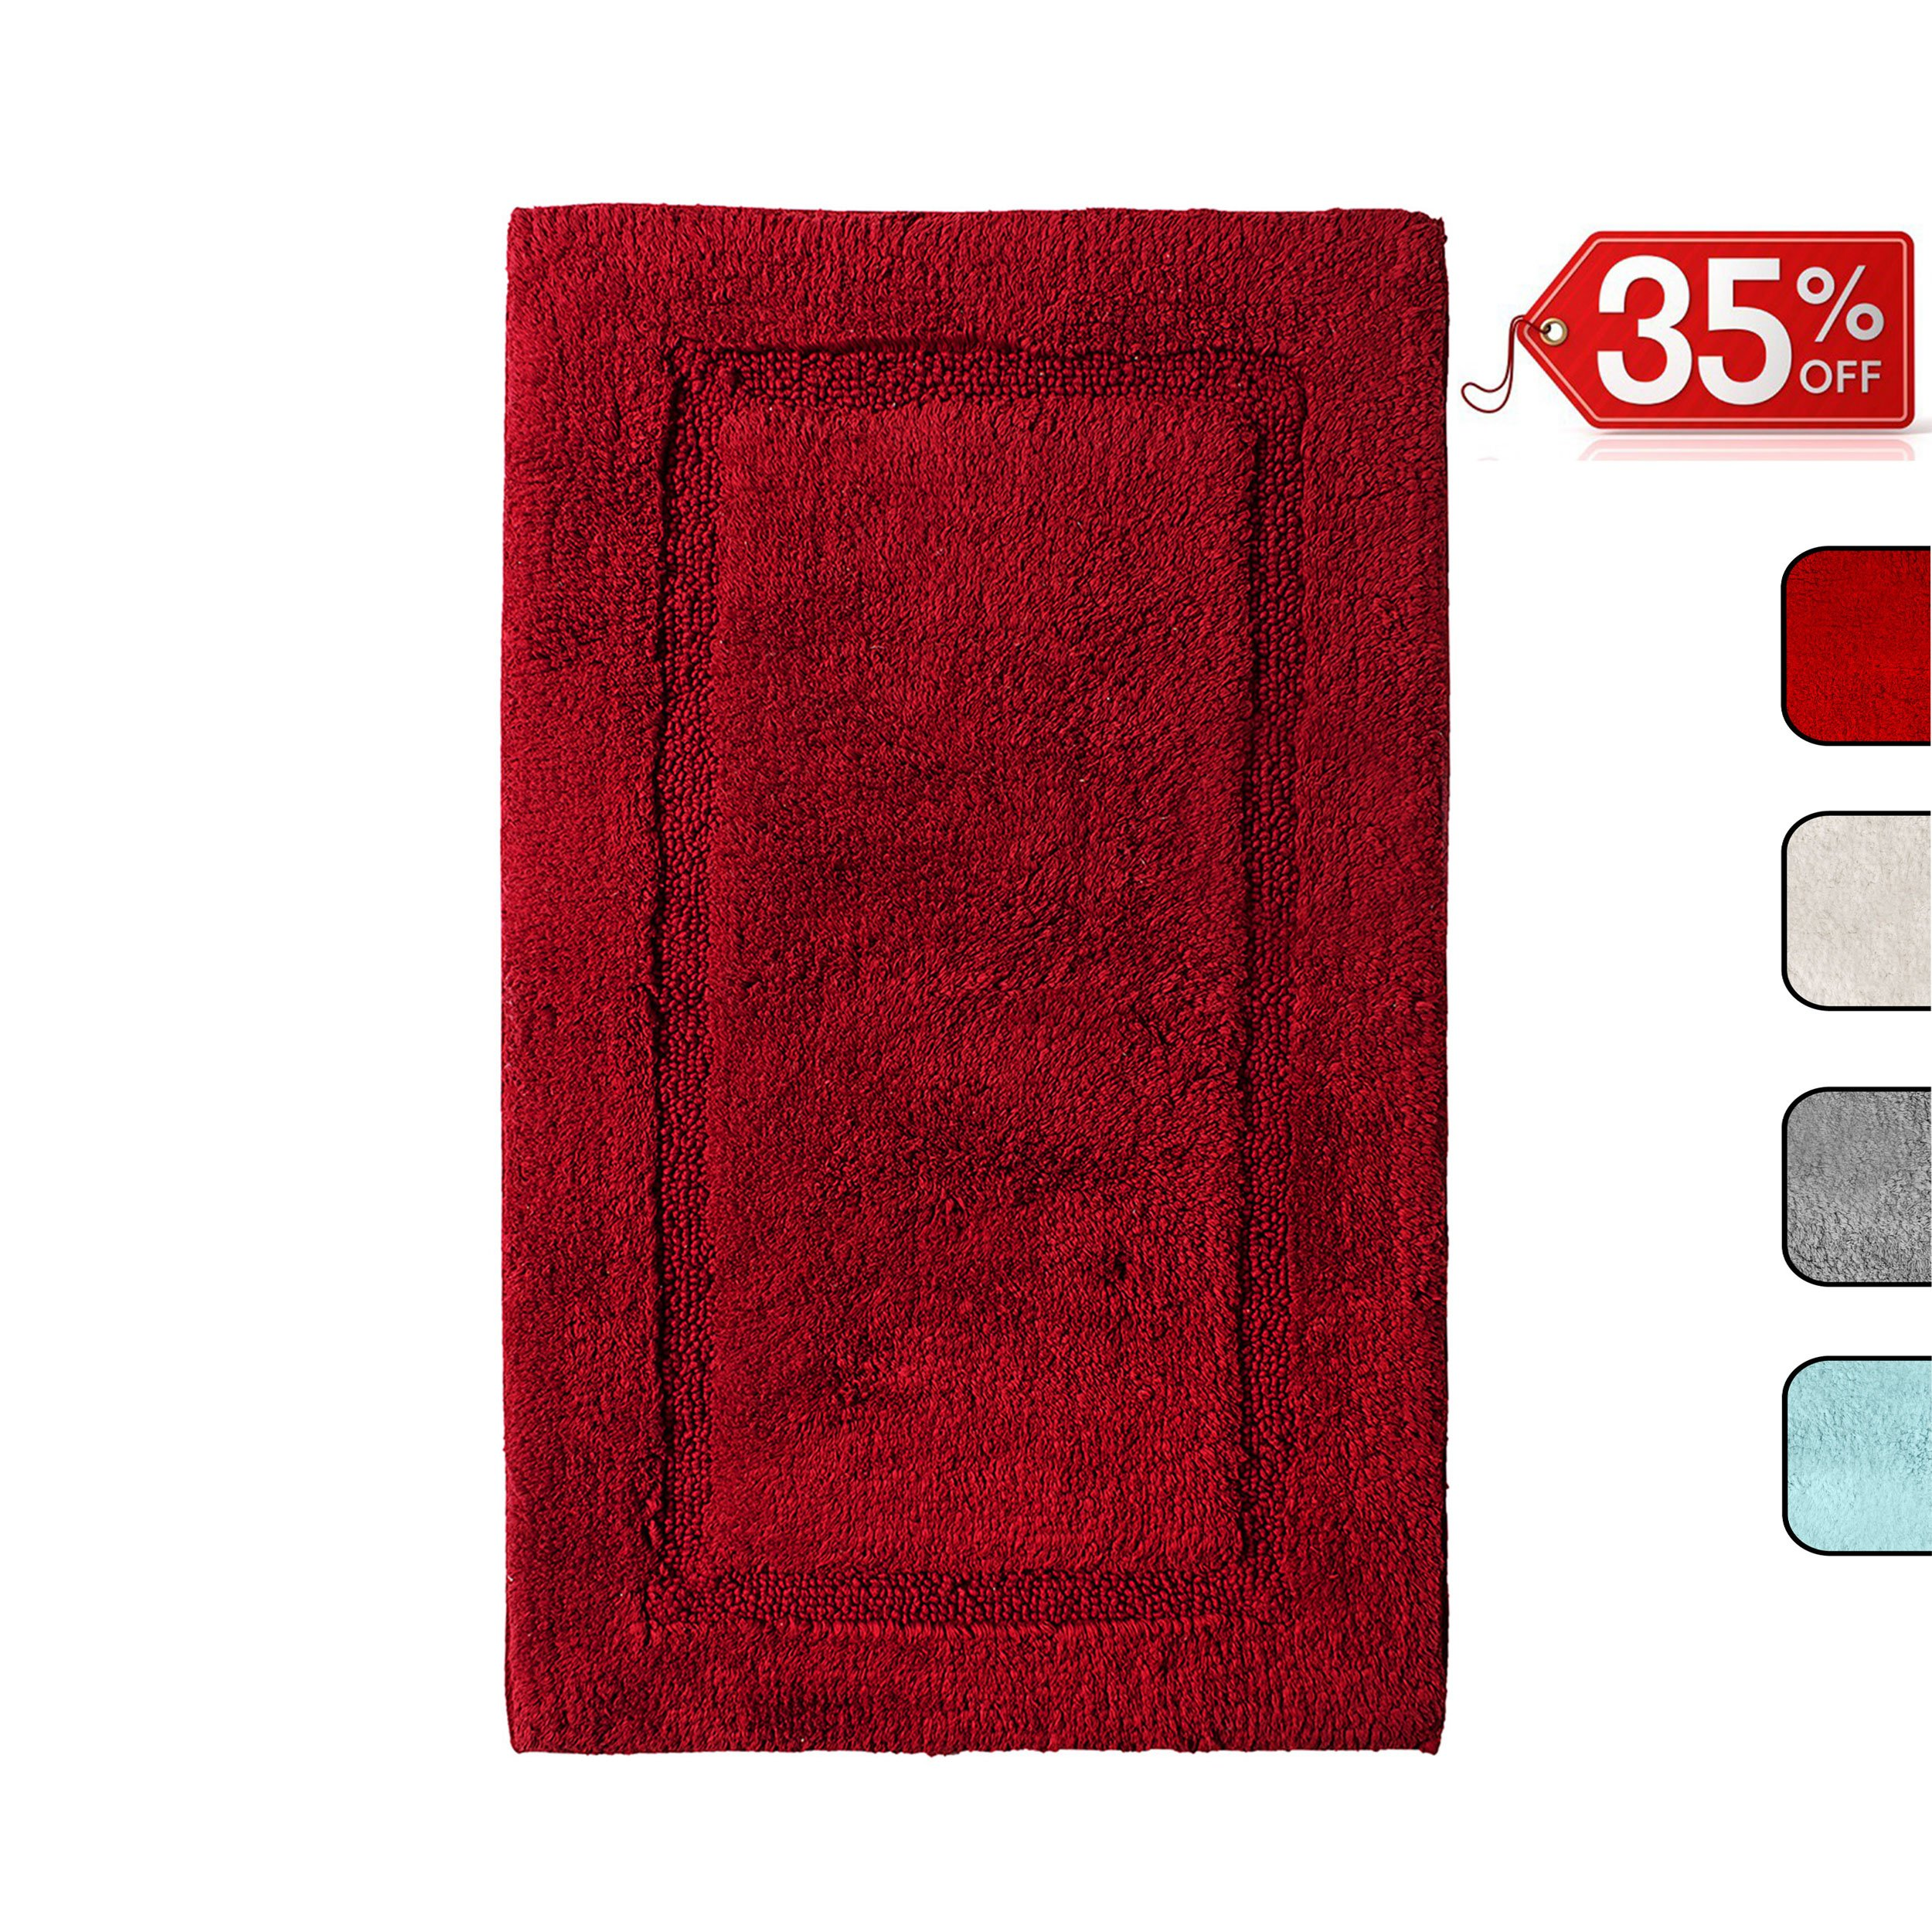 QltyFrst Bathroom Rugs Non-Skid 100% Premium Cotton 1900 GSM Size 21''x34'' Bath Mat Luxurious Area Rug Extra Plush Absorbent Red